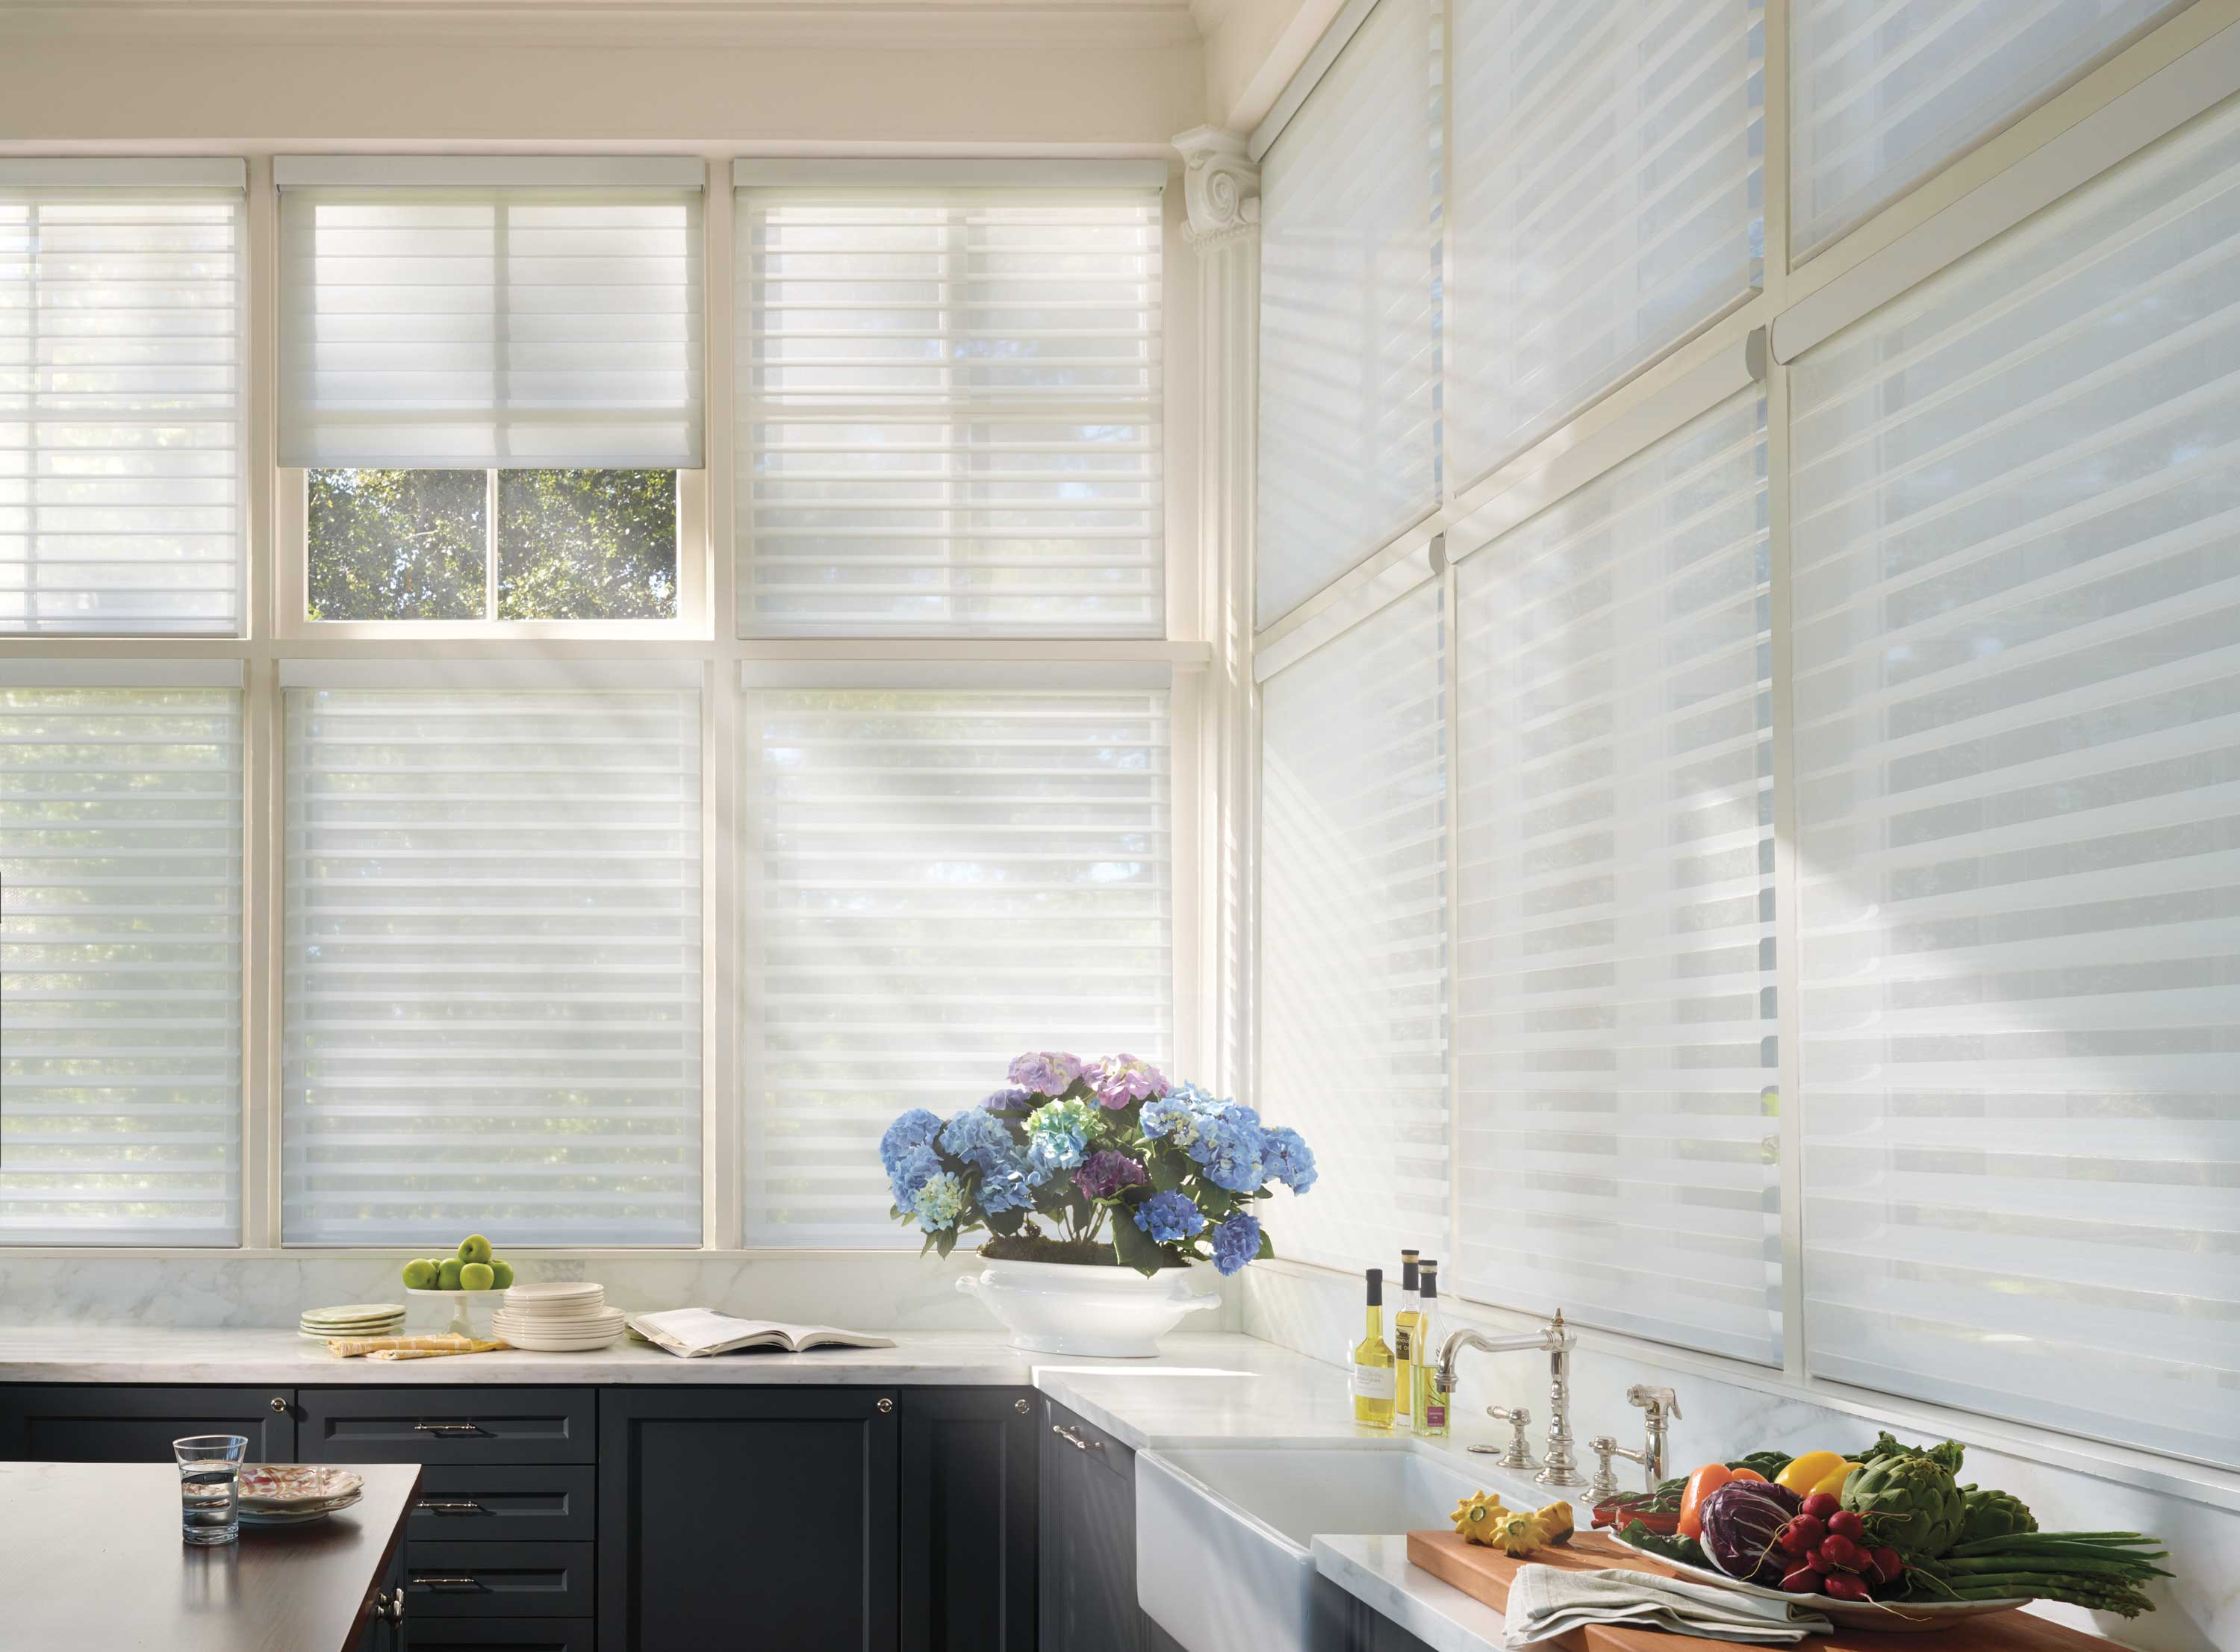 Hunter Douglas Silhouette Shades for Kitchens Near Fairfield and Fremont, California (CA)